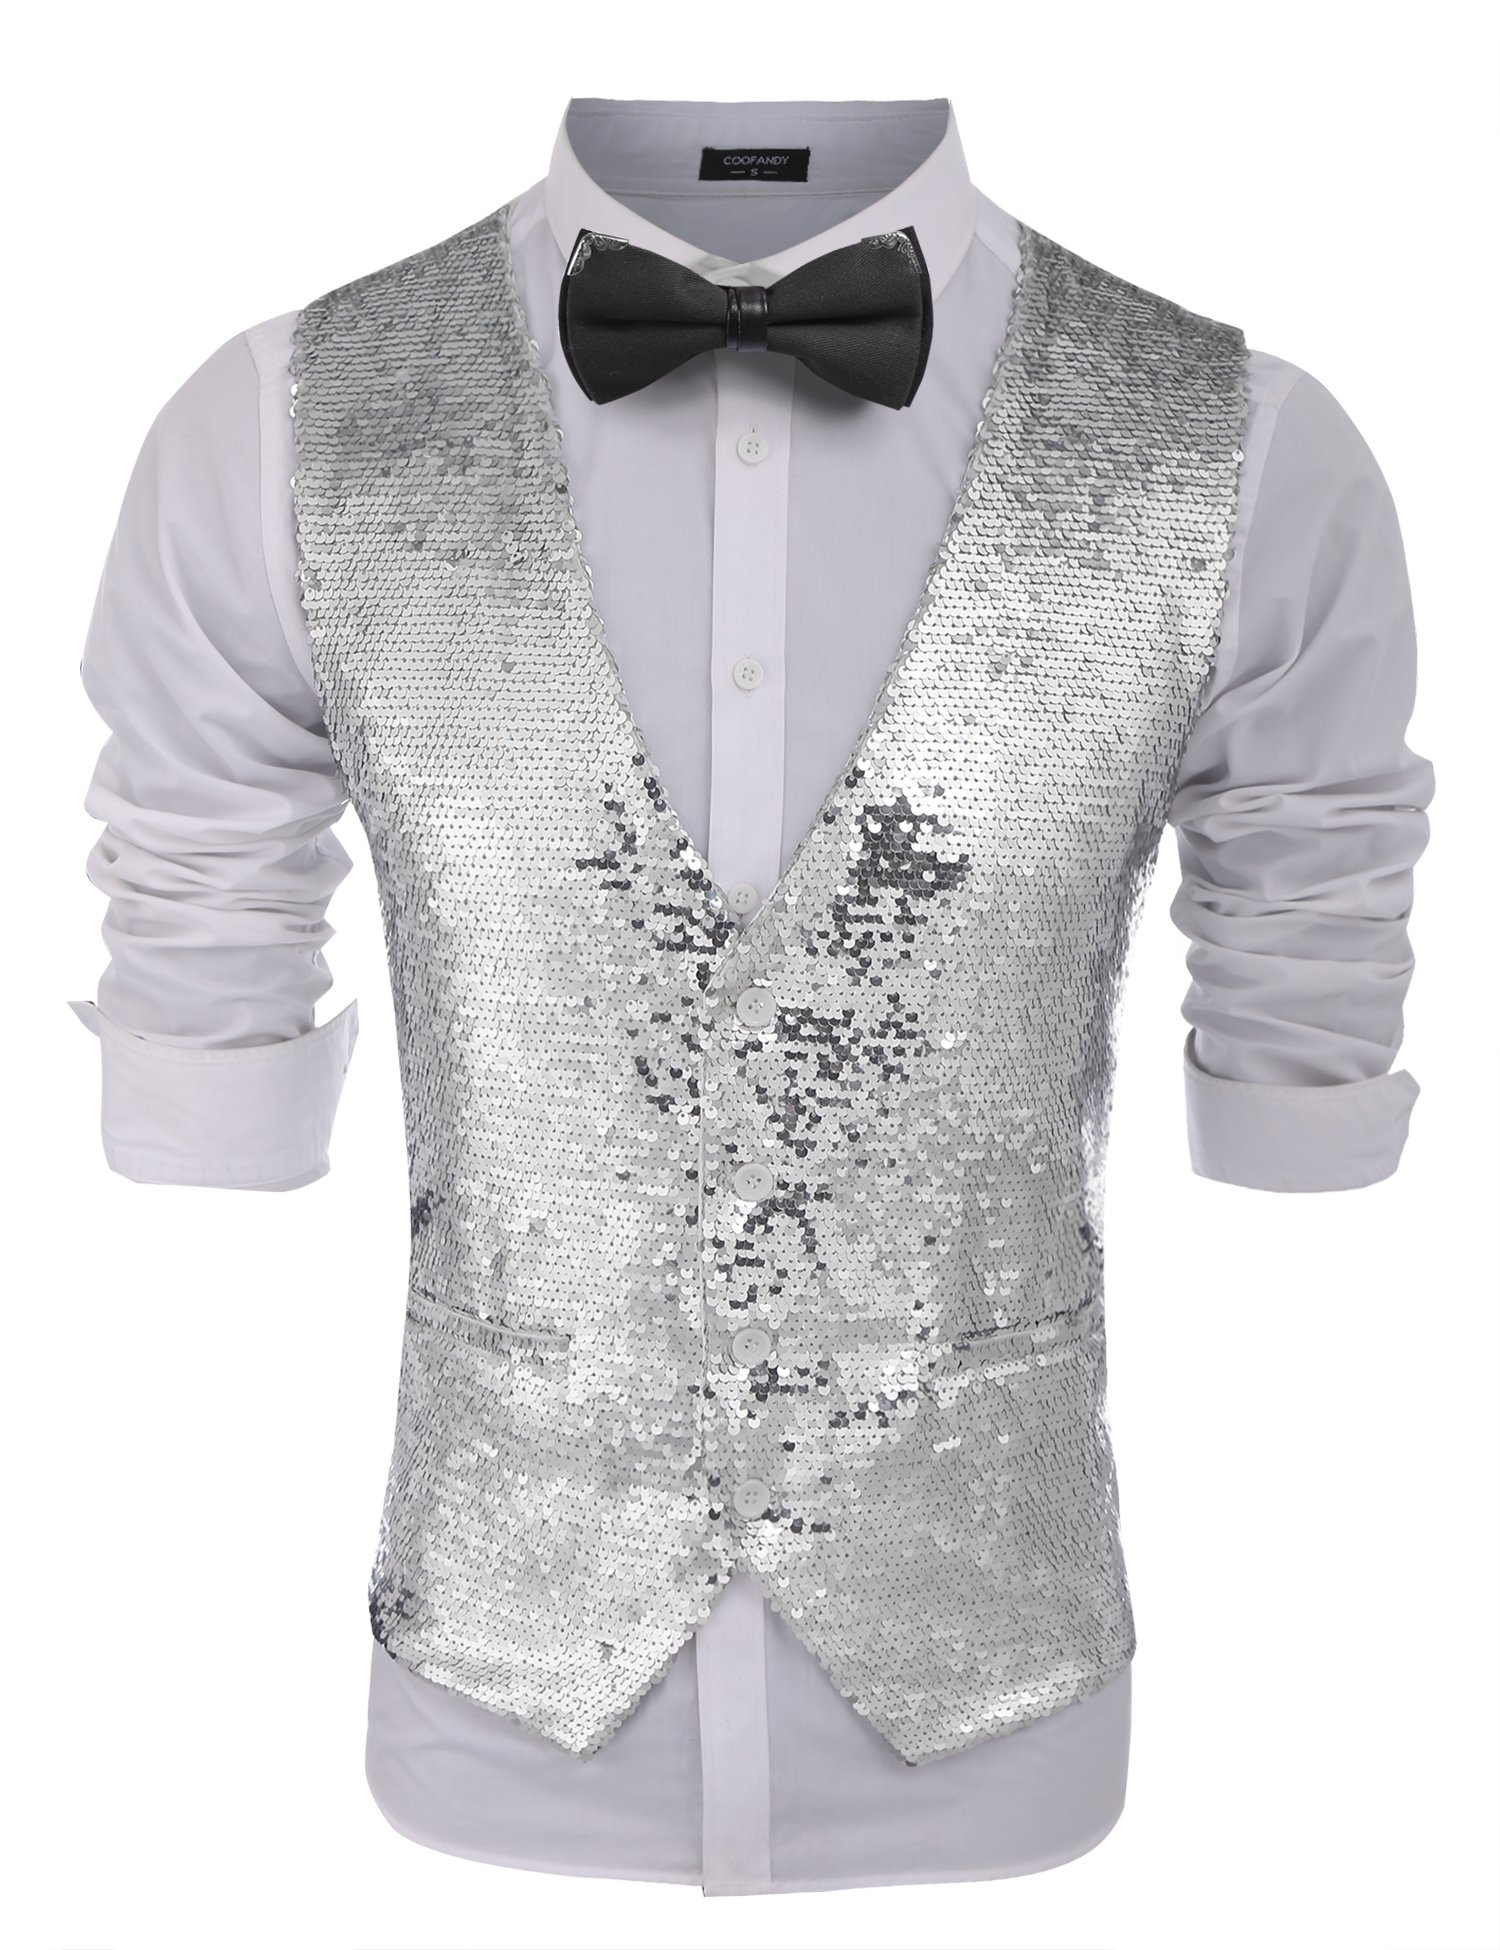 COOFANDY Men's Fashion Shiny Sequins Vests Halloween Christmas Slim Fit Stitching Vest(Silver, XXL) by COOFANDY